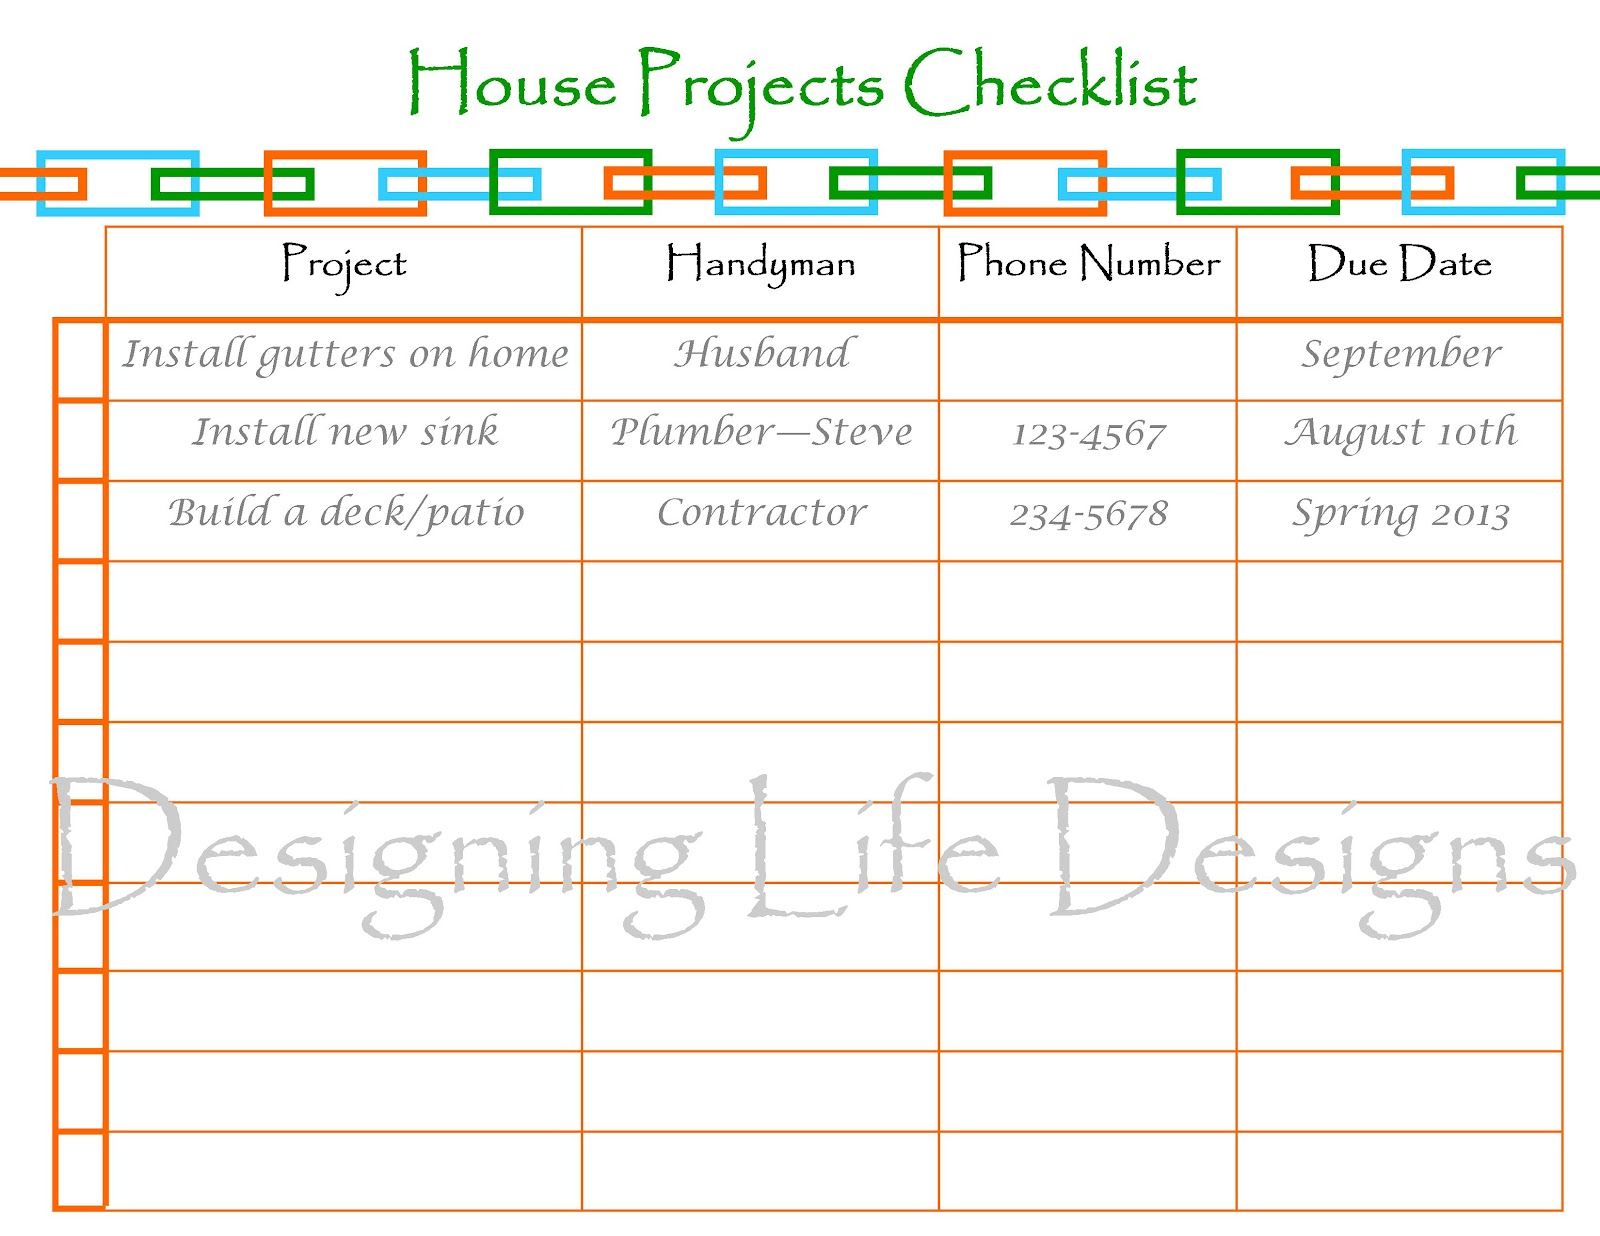 Daily Work Checklist Template